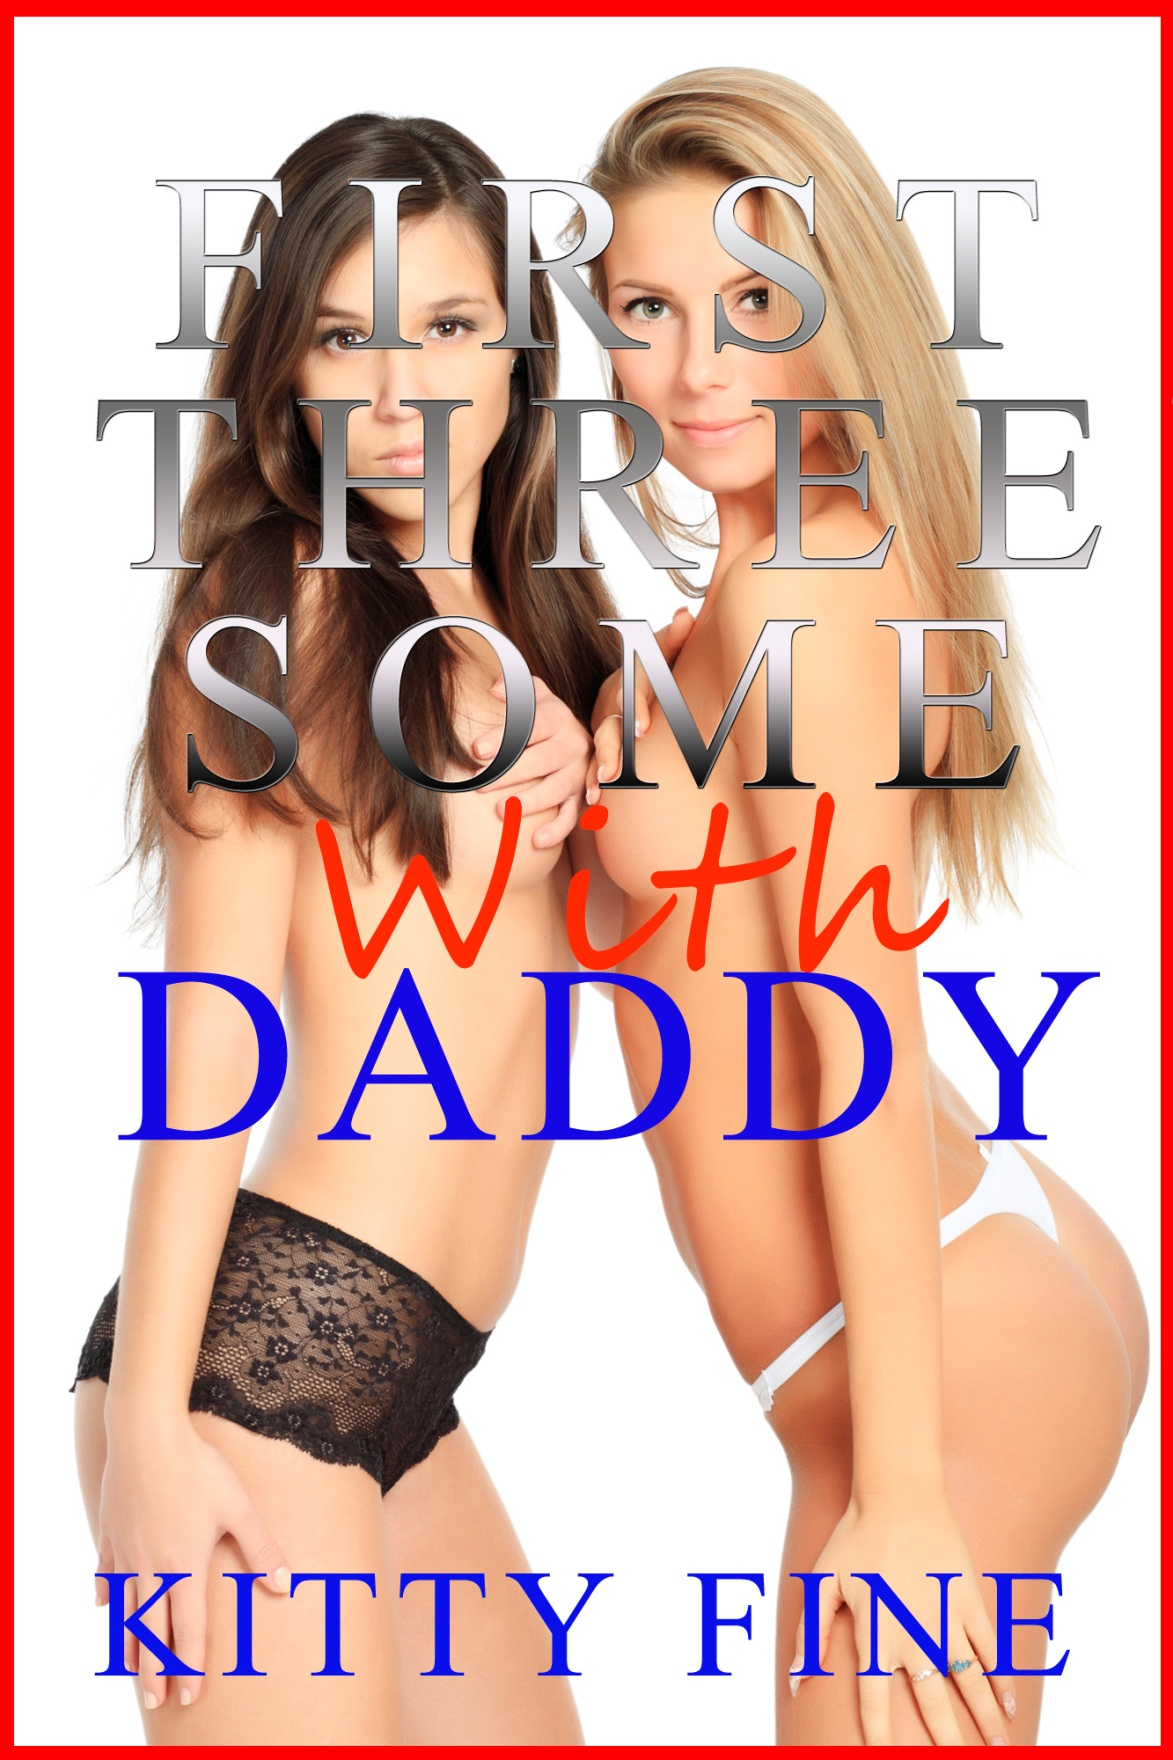 smashwords – first threesome with daddy: daddy's girl #2 - menage